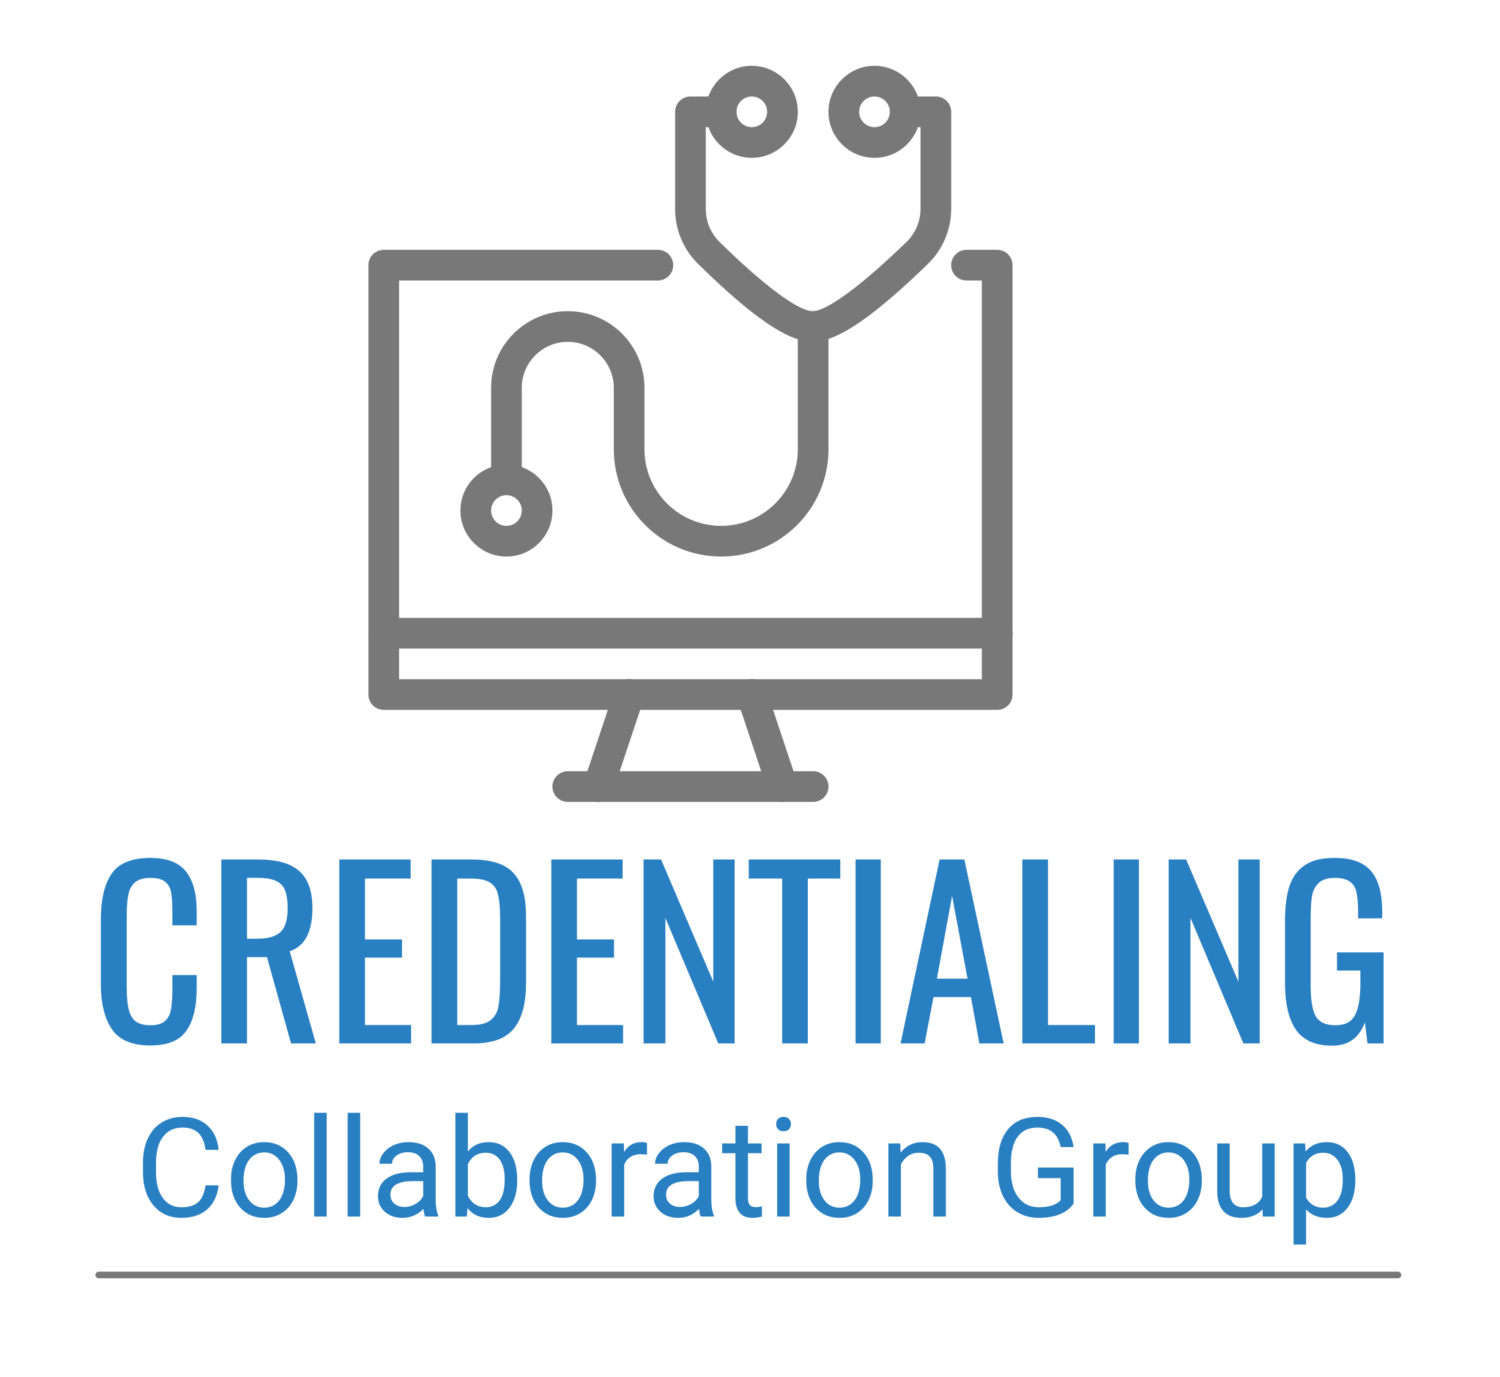 Credentialing Collaboration Group